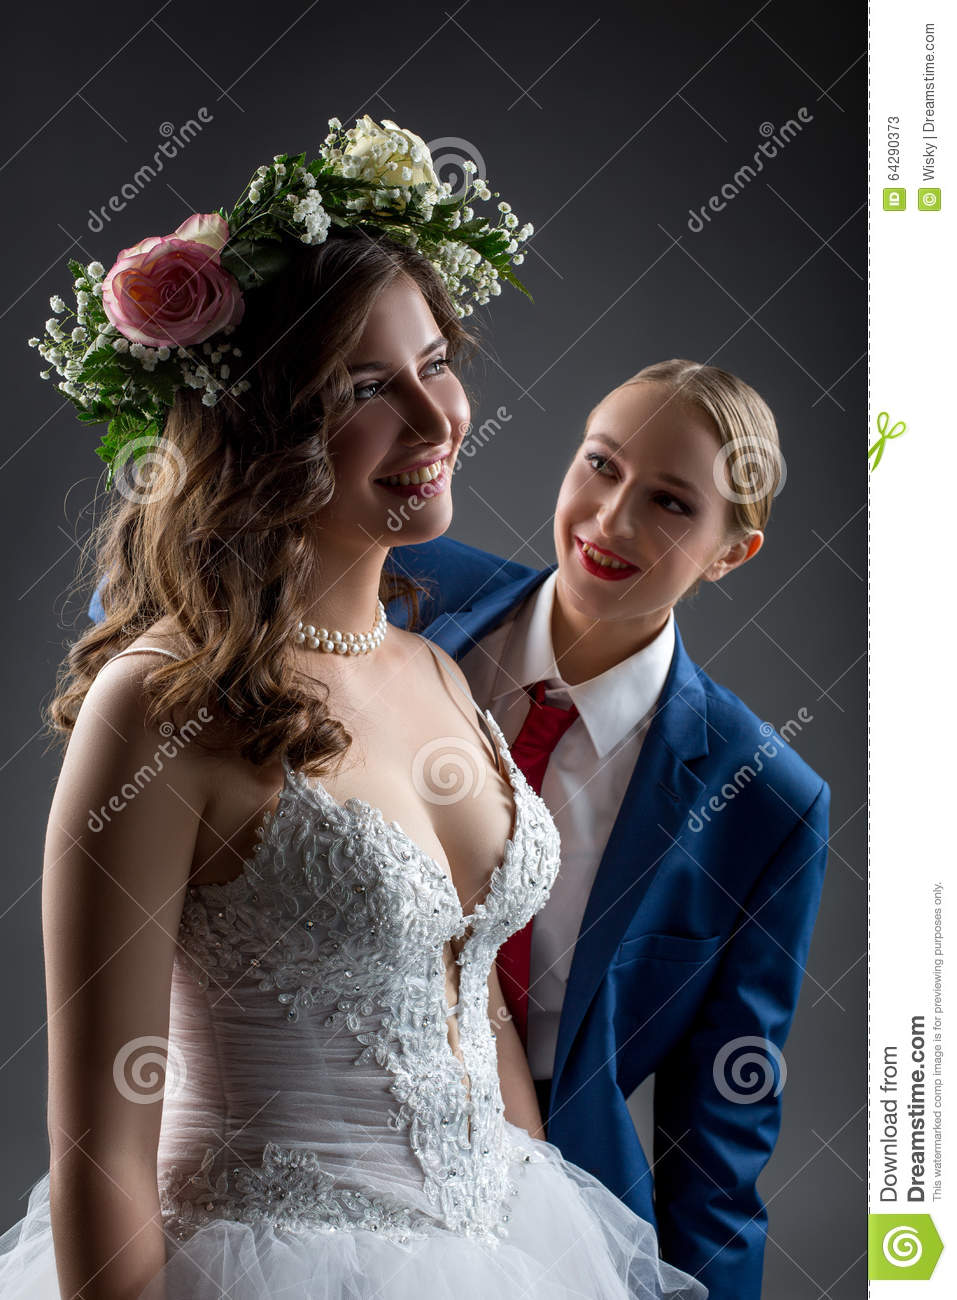 image Lesbian bride and groom strapon fuck